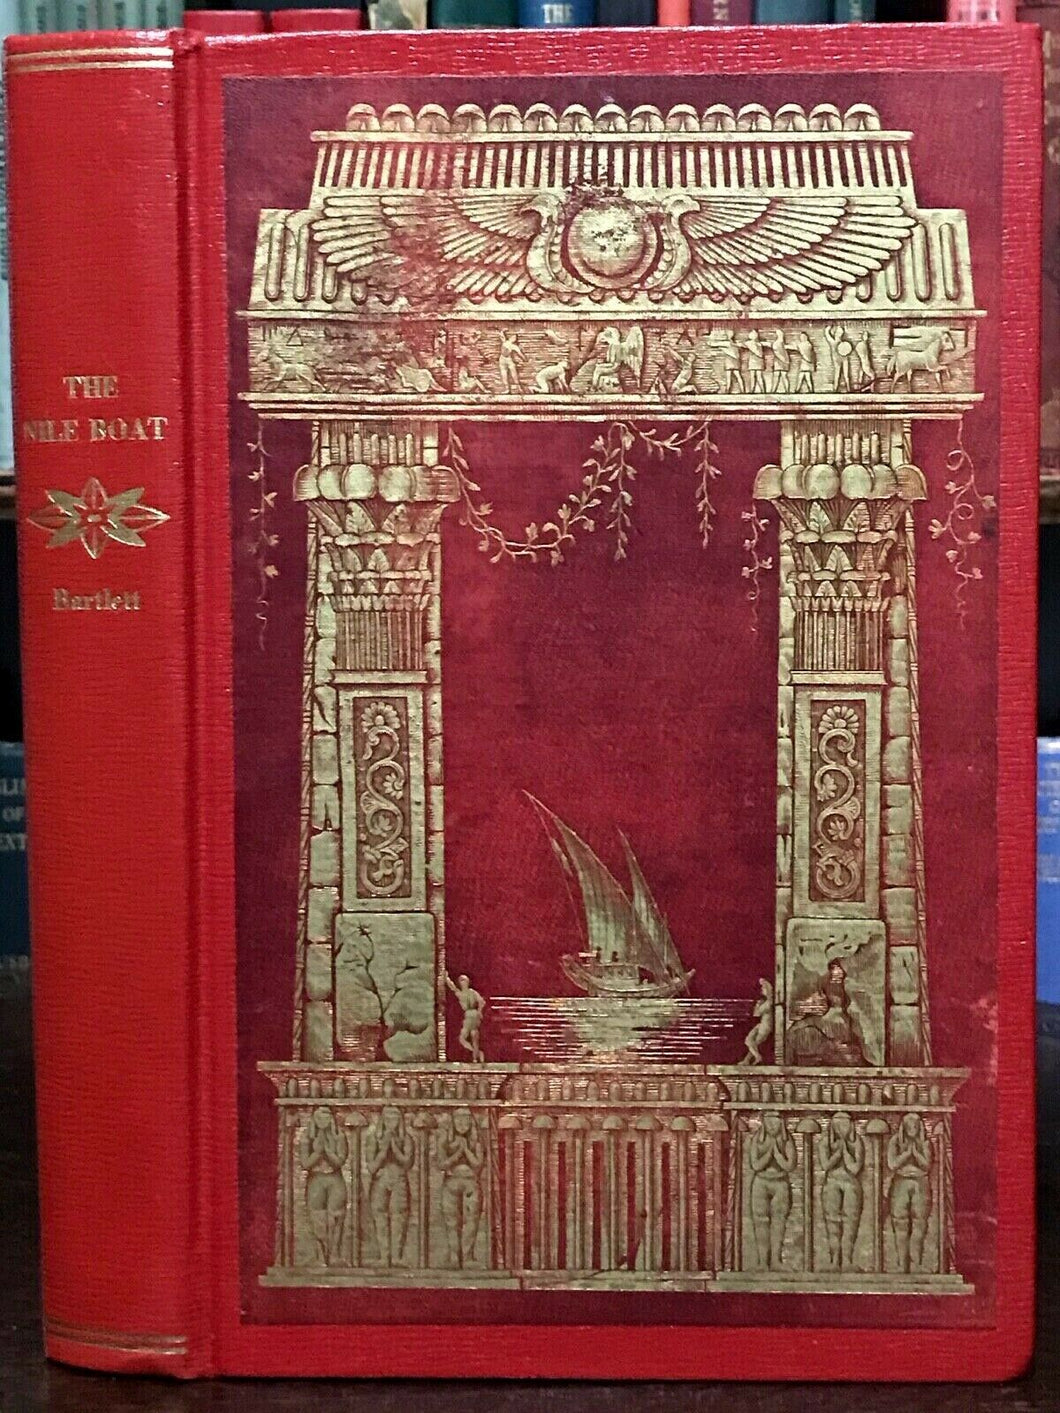 NILE BOAT, GLIMPSES OF THE LAND OF EGYPT - 1st Ed 1851 ILLUSTRATED ANCIENT EGYPT